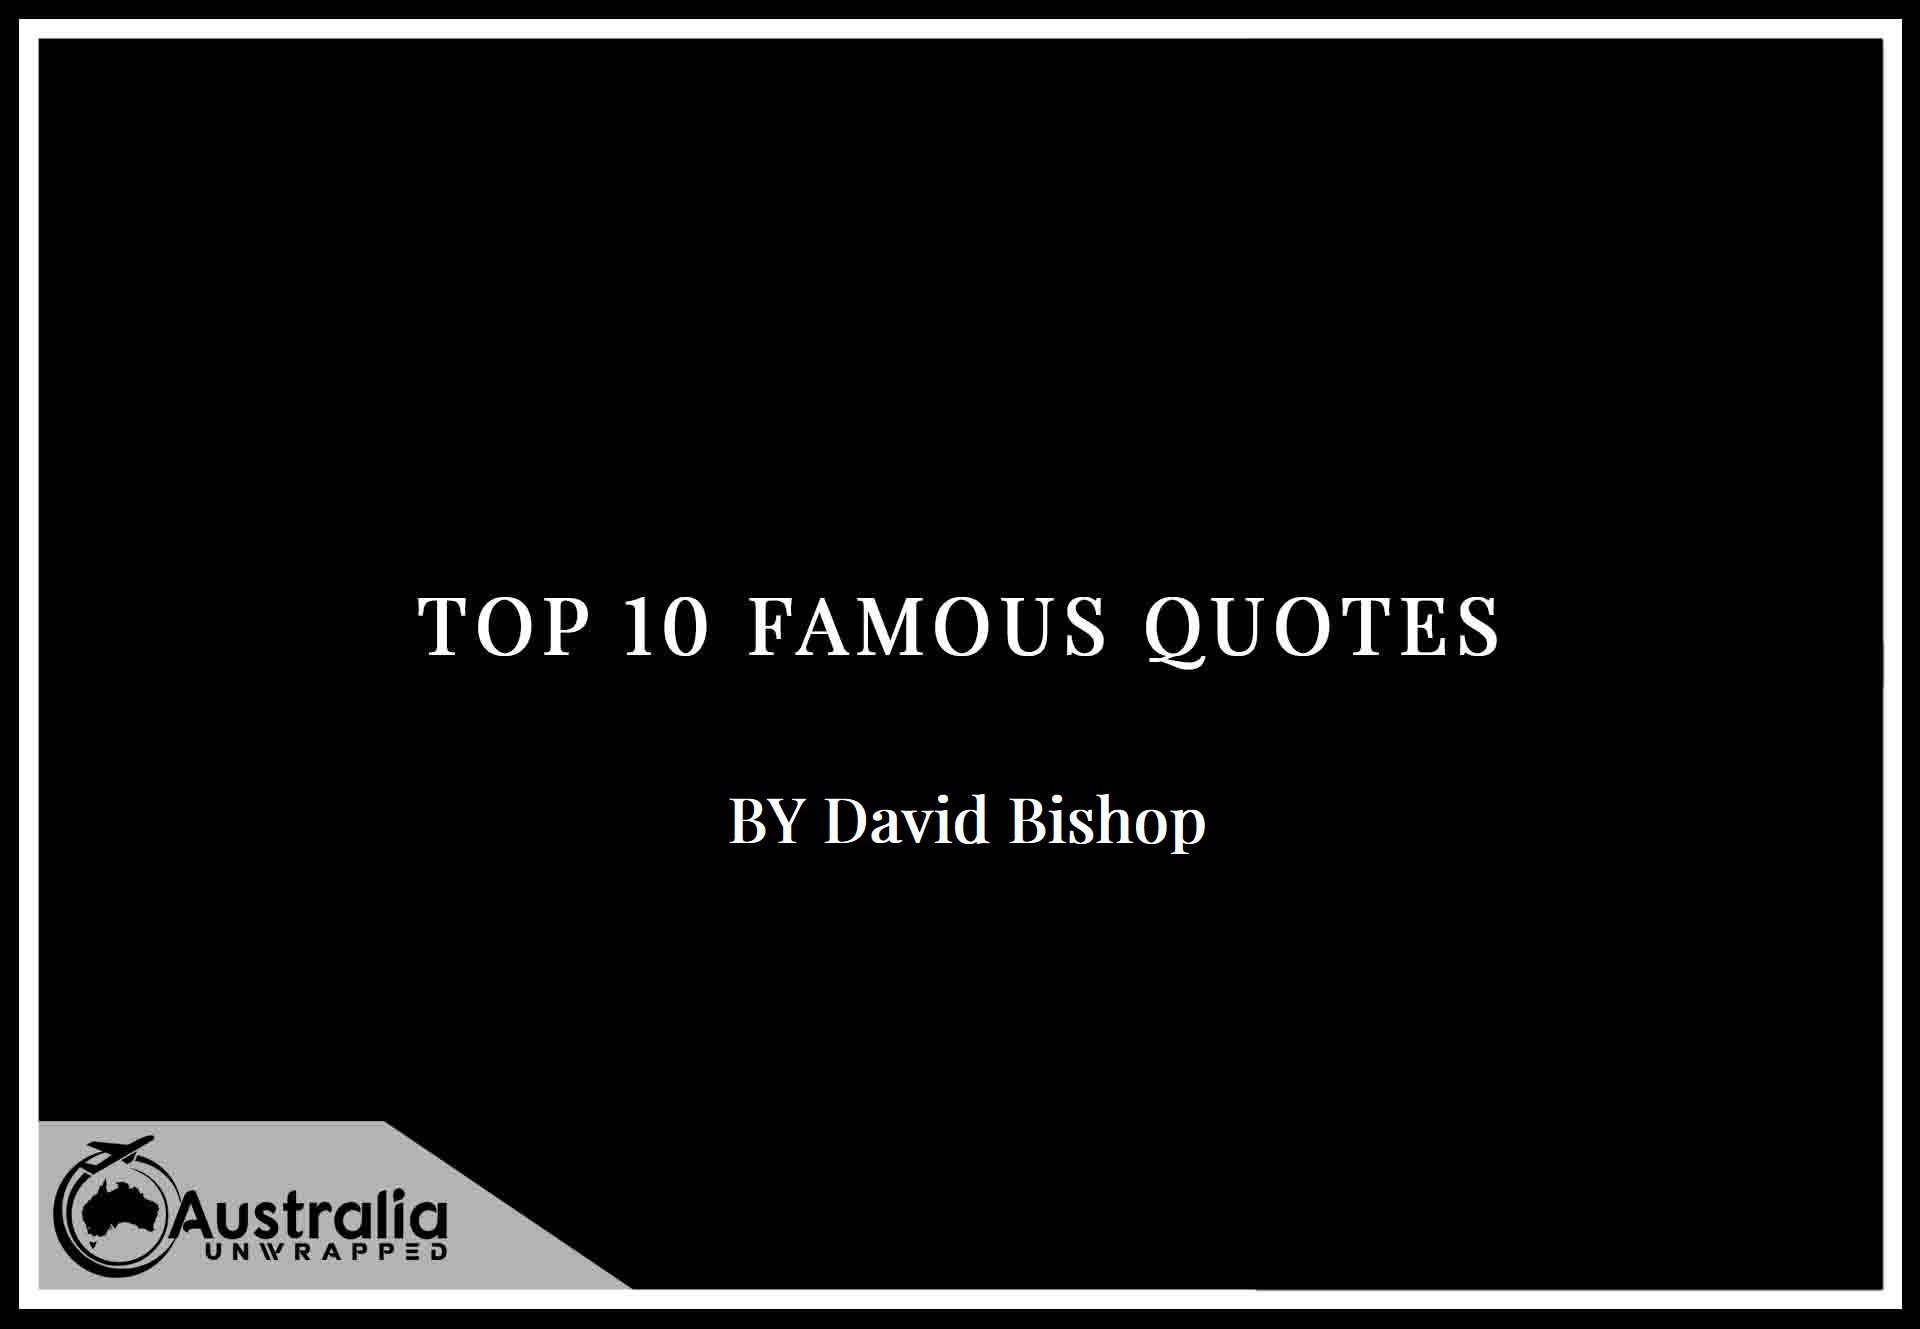 Top 10 Famous Quotes by Author David Bishop